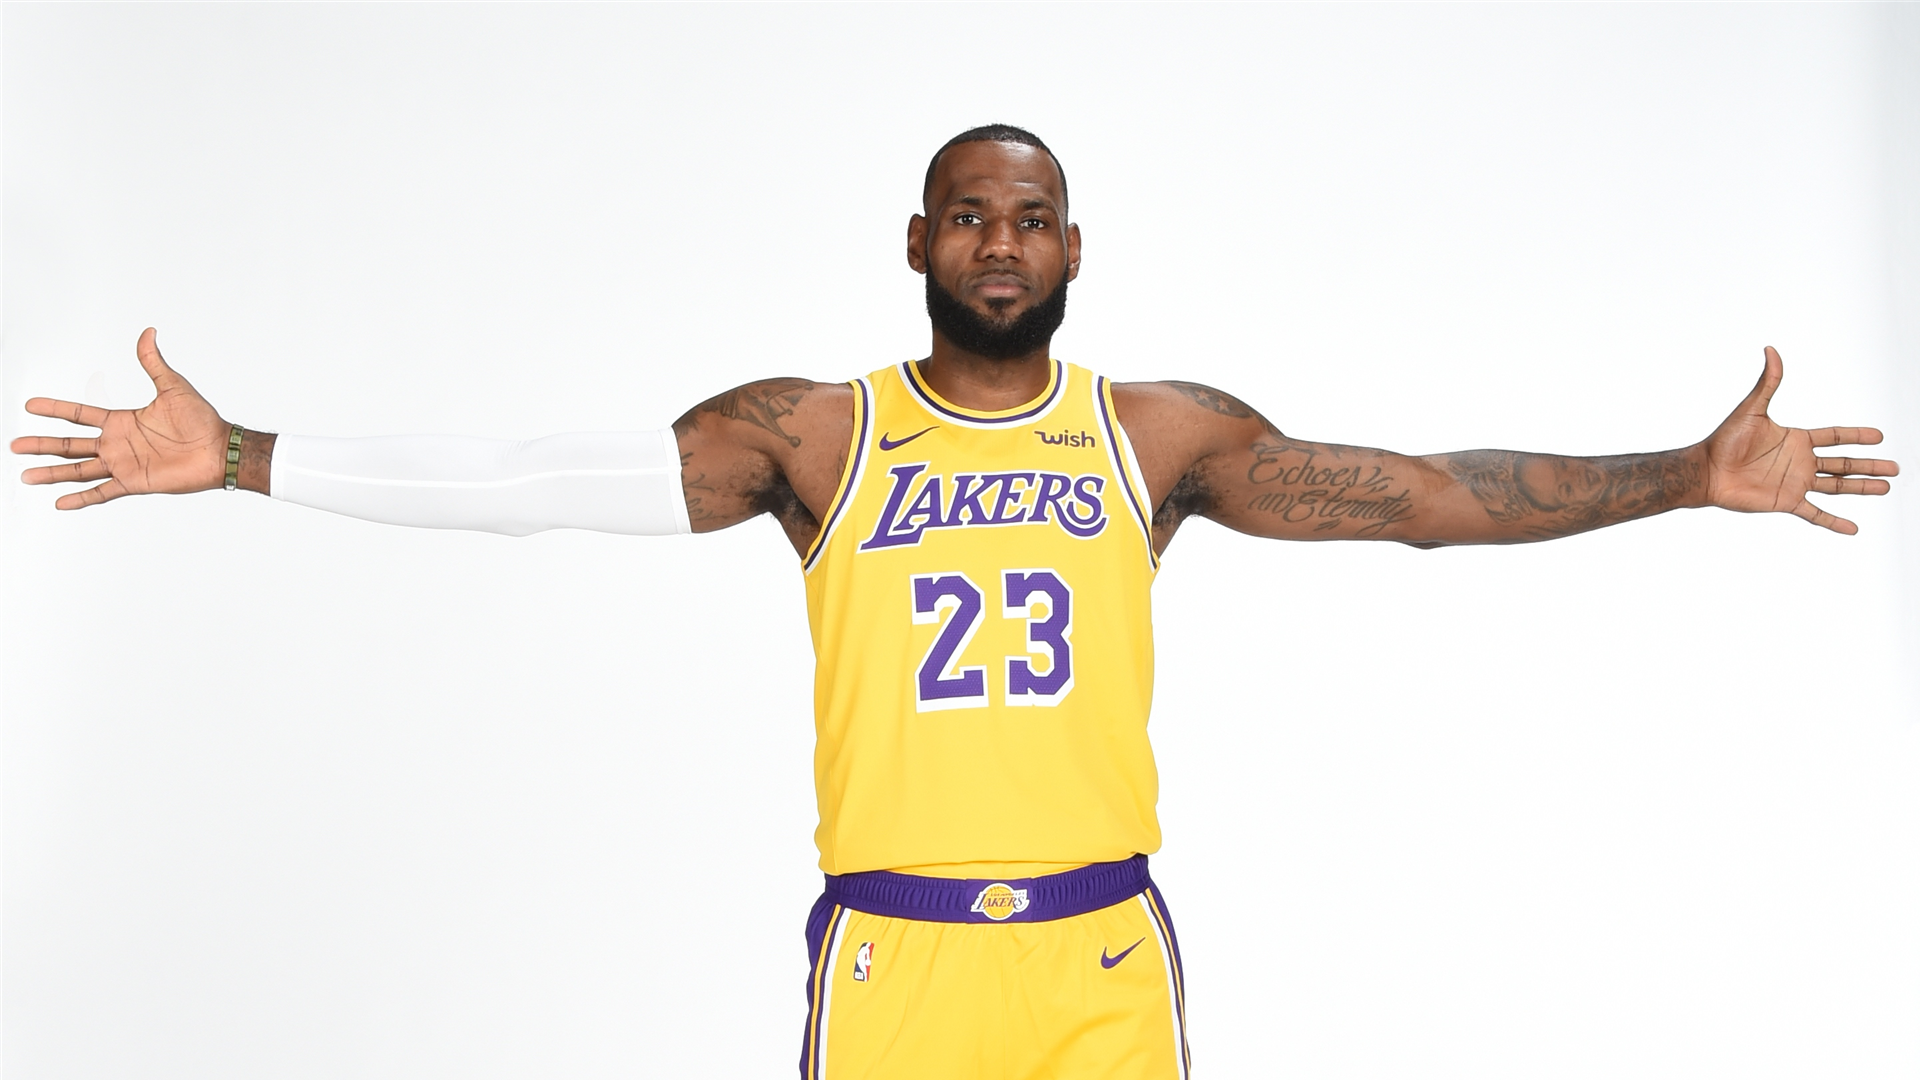 2018 19 Nba Season Preview Questions For Lebron James Nba Com India The Official Site Of The Nba